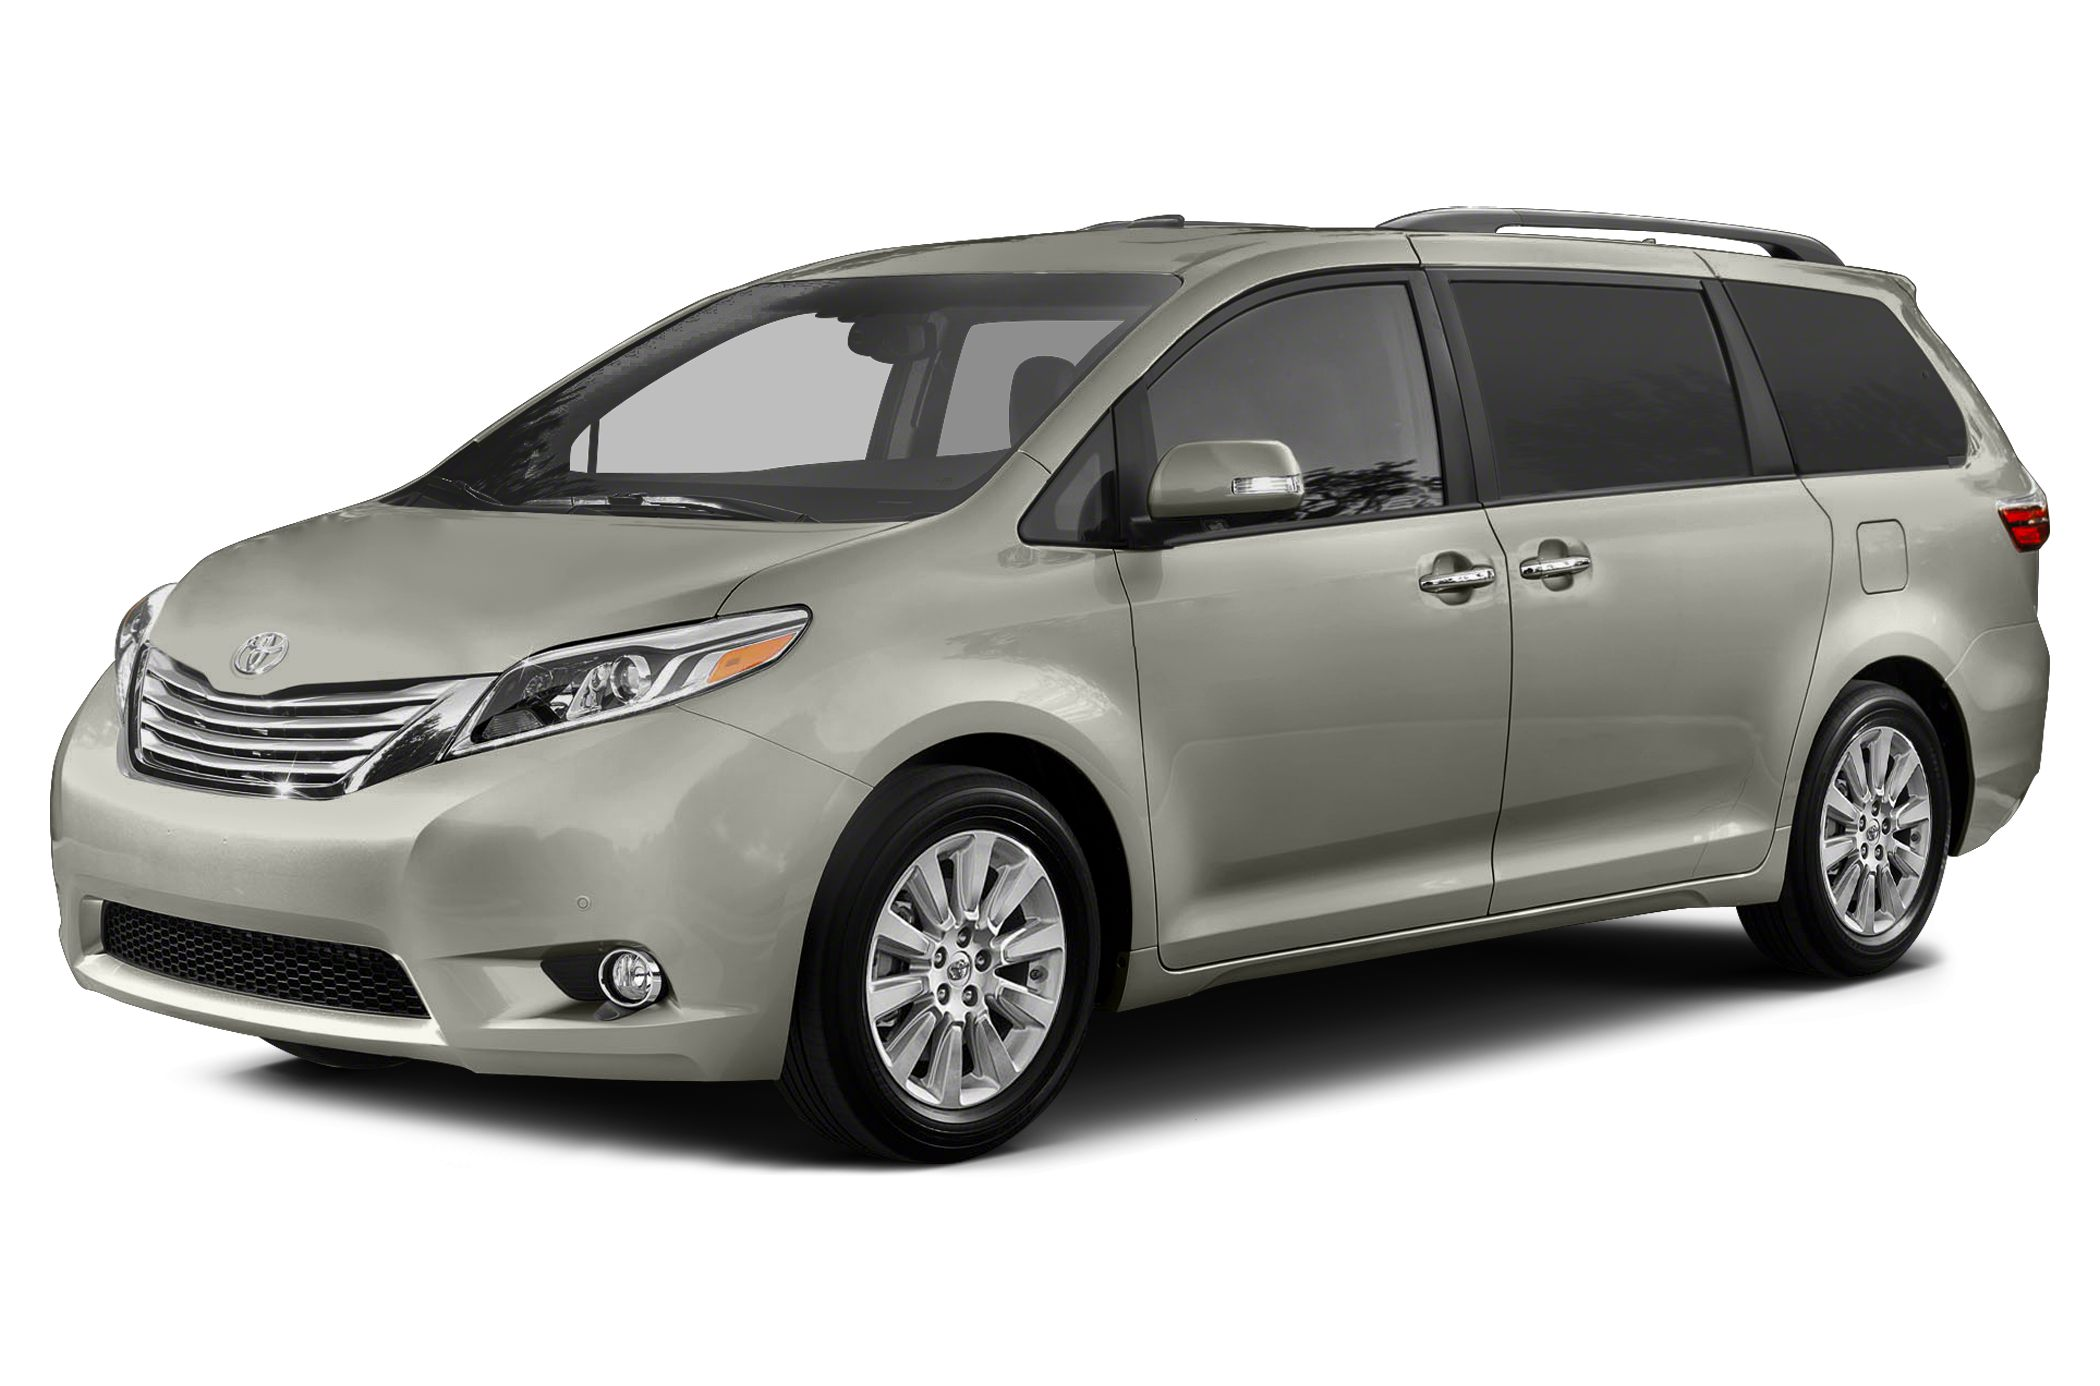 2015 Toyota Sienna XLE Minivan for sale in Pensacola for $38,126 with 4 miles.